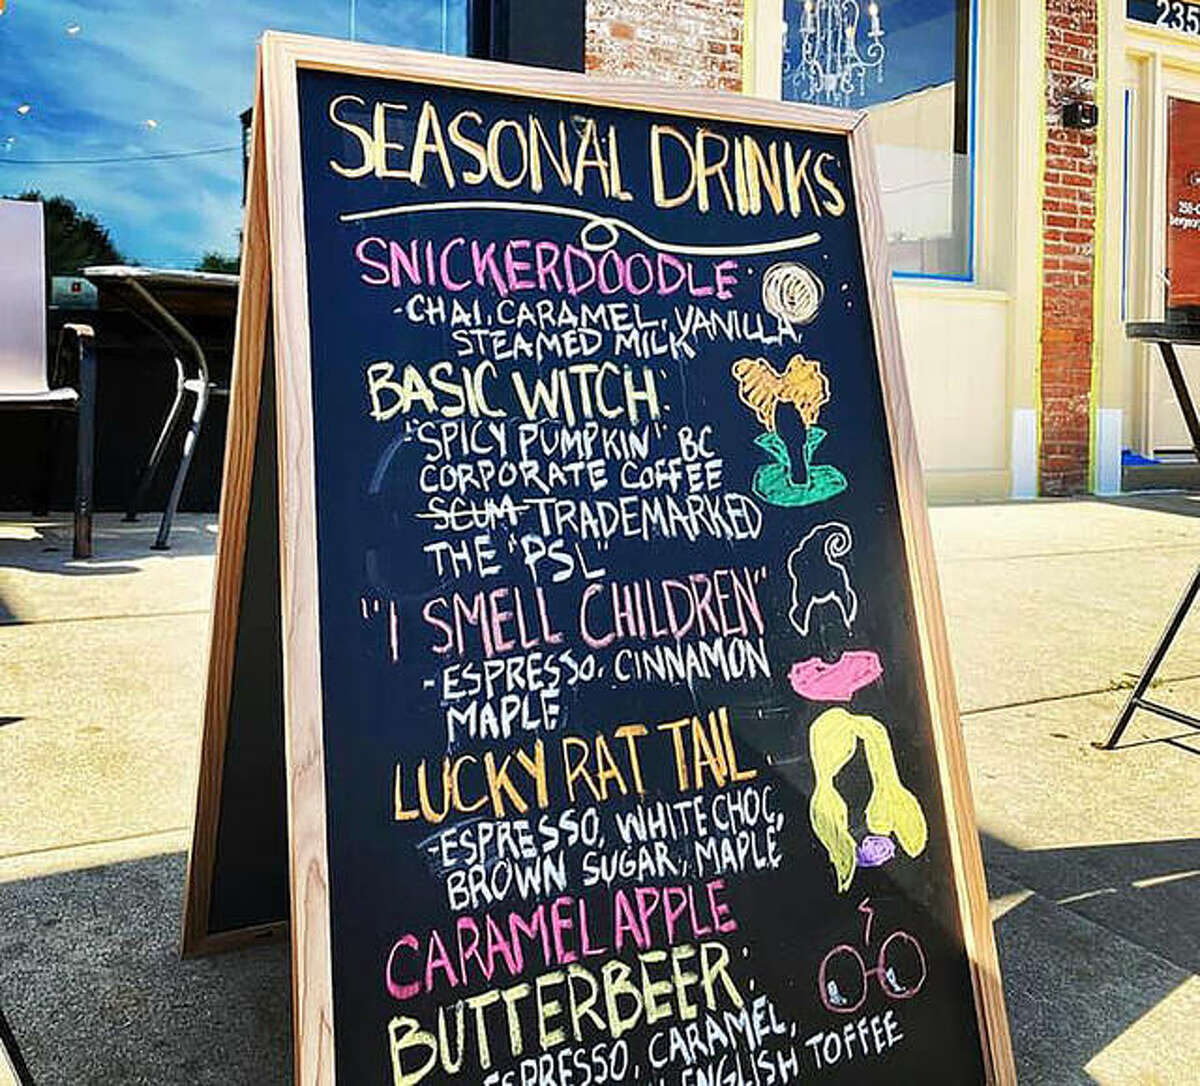 Sacred Grounds rolled out its fall menu on Sept. 22.